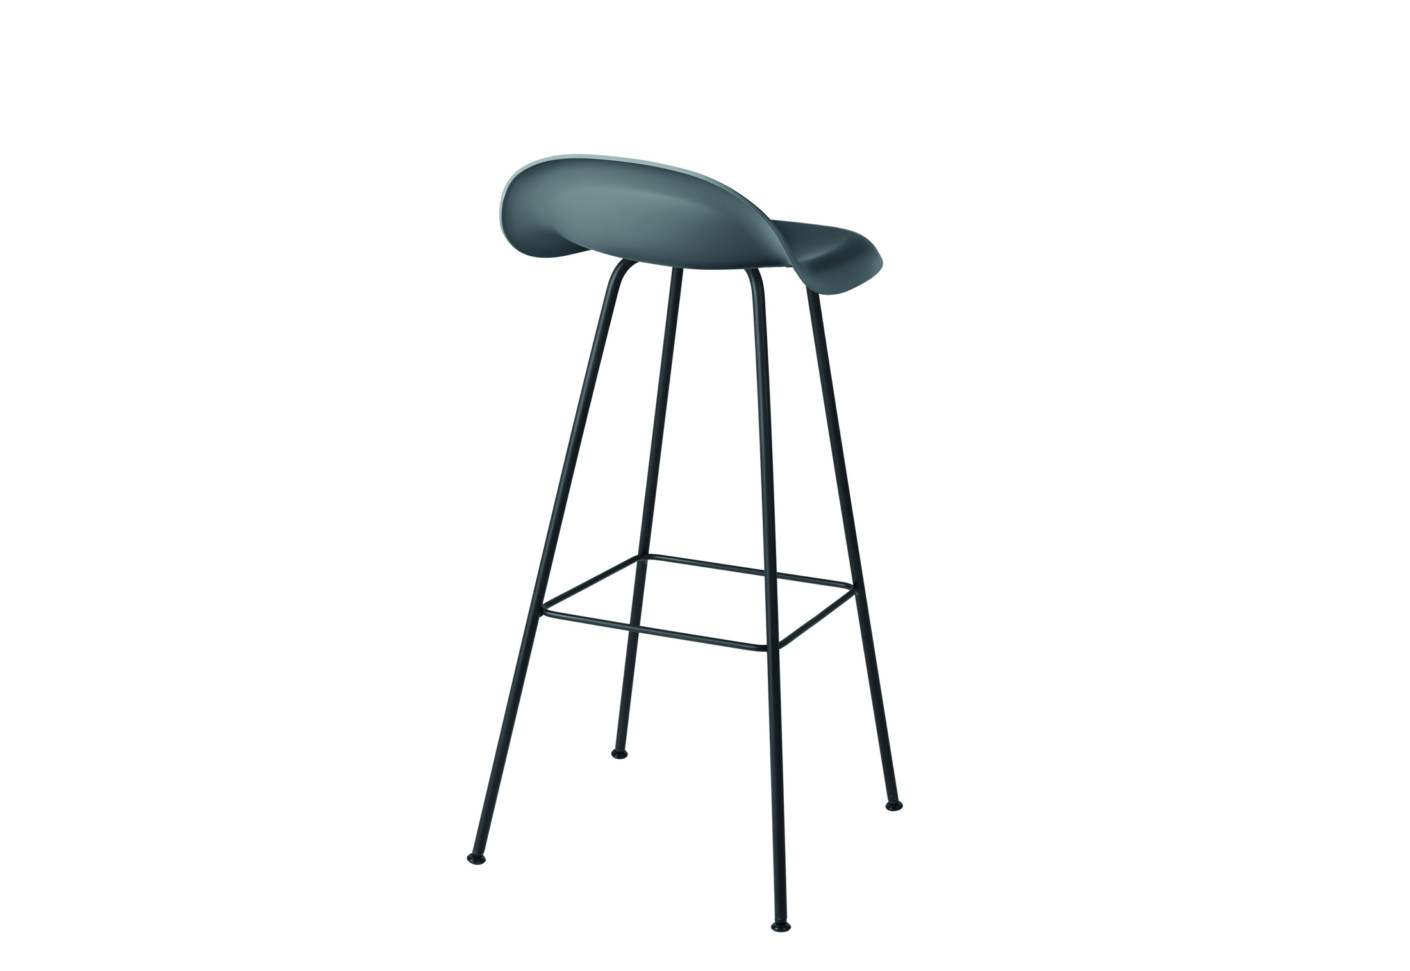 Chair I Stool with metal legs by Gubi STYLEPARK : chair i stool with metal legs 4 from www.stylepark.com size 1410 x 971 jpeg 49kB